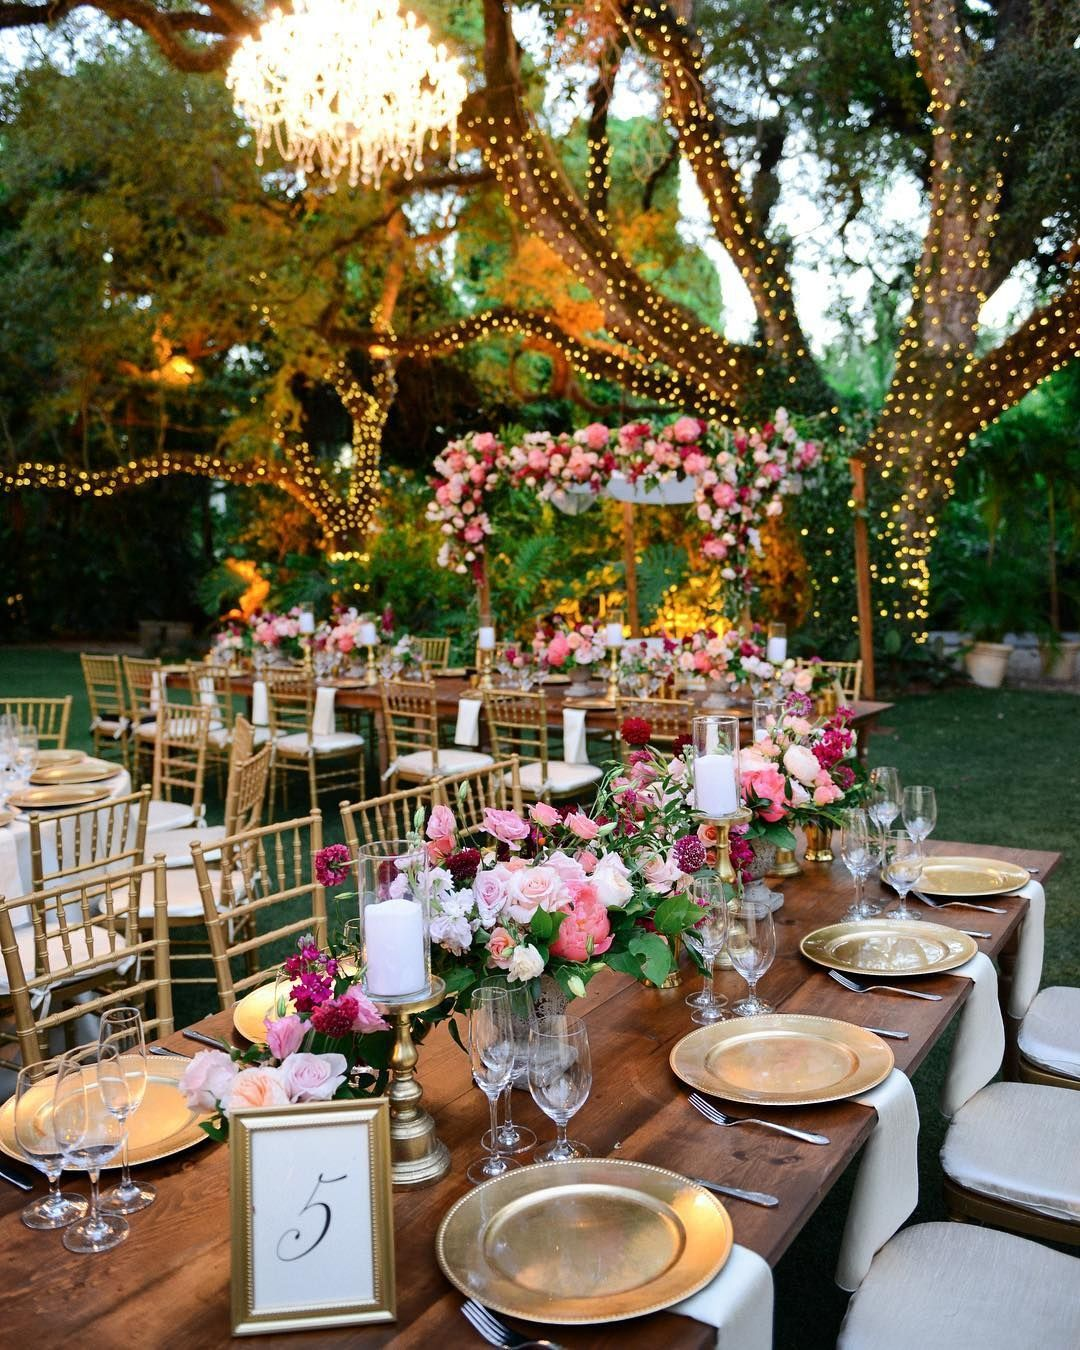 Luxury Wedding Pages On Instagram Fabulous Who Wants To Have This Decor Too Double Tap Catering By Billhansenluxurycatering Floral By Everafterf